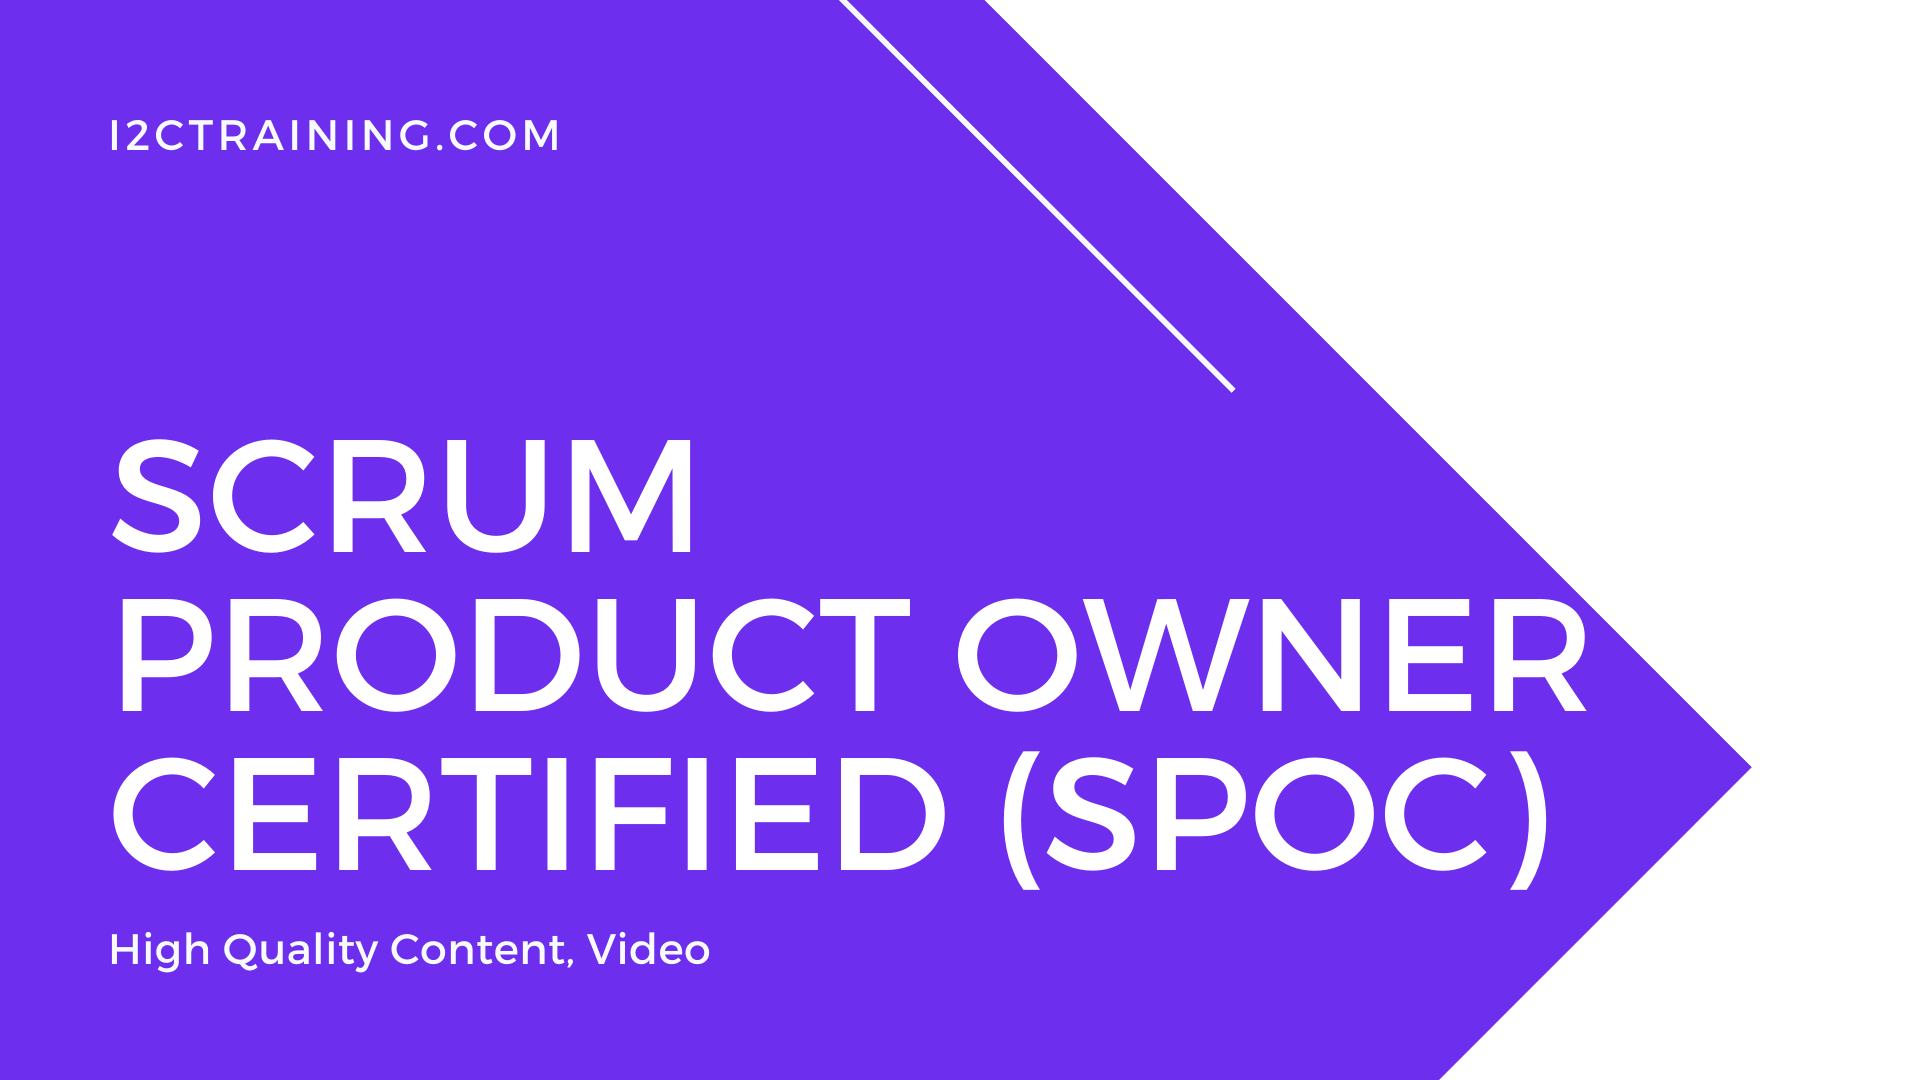 Scrum Product Owner Certified (SPOC) online course I2ctraining